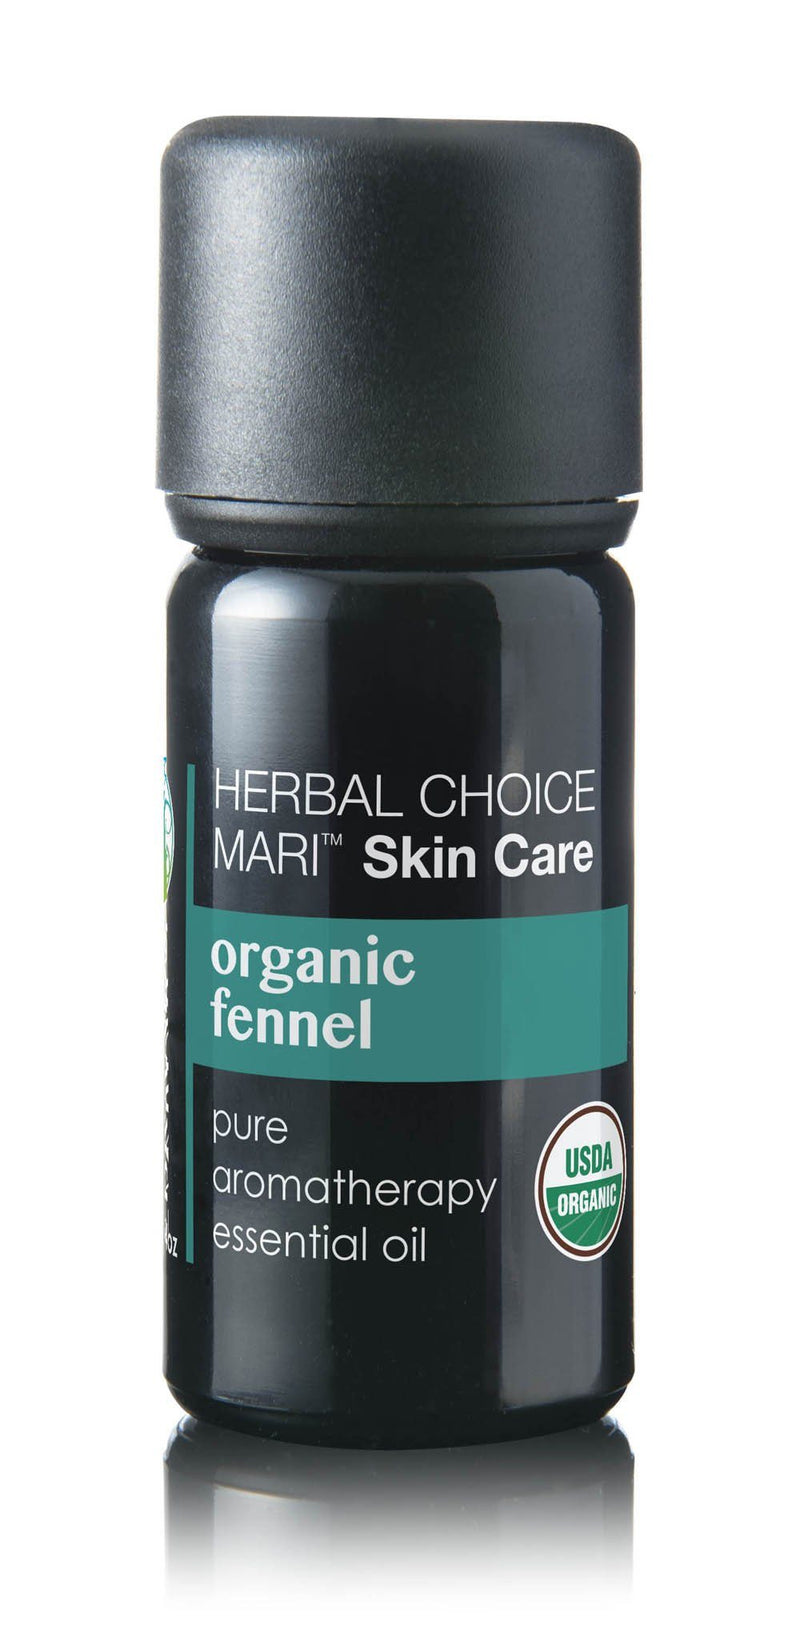 Herbal Choice Mari Organic Fennel Essential Oil; 0.3floz Glass - Herbal Choice Mari Organic Fennel Essential Oil; 0.3floz Glass - Herbal Choice Mari Organic Fennel Essential Oil; 0.3floz Glass